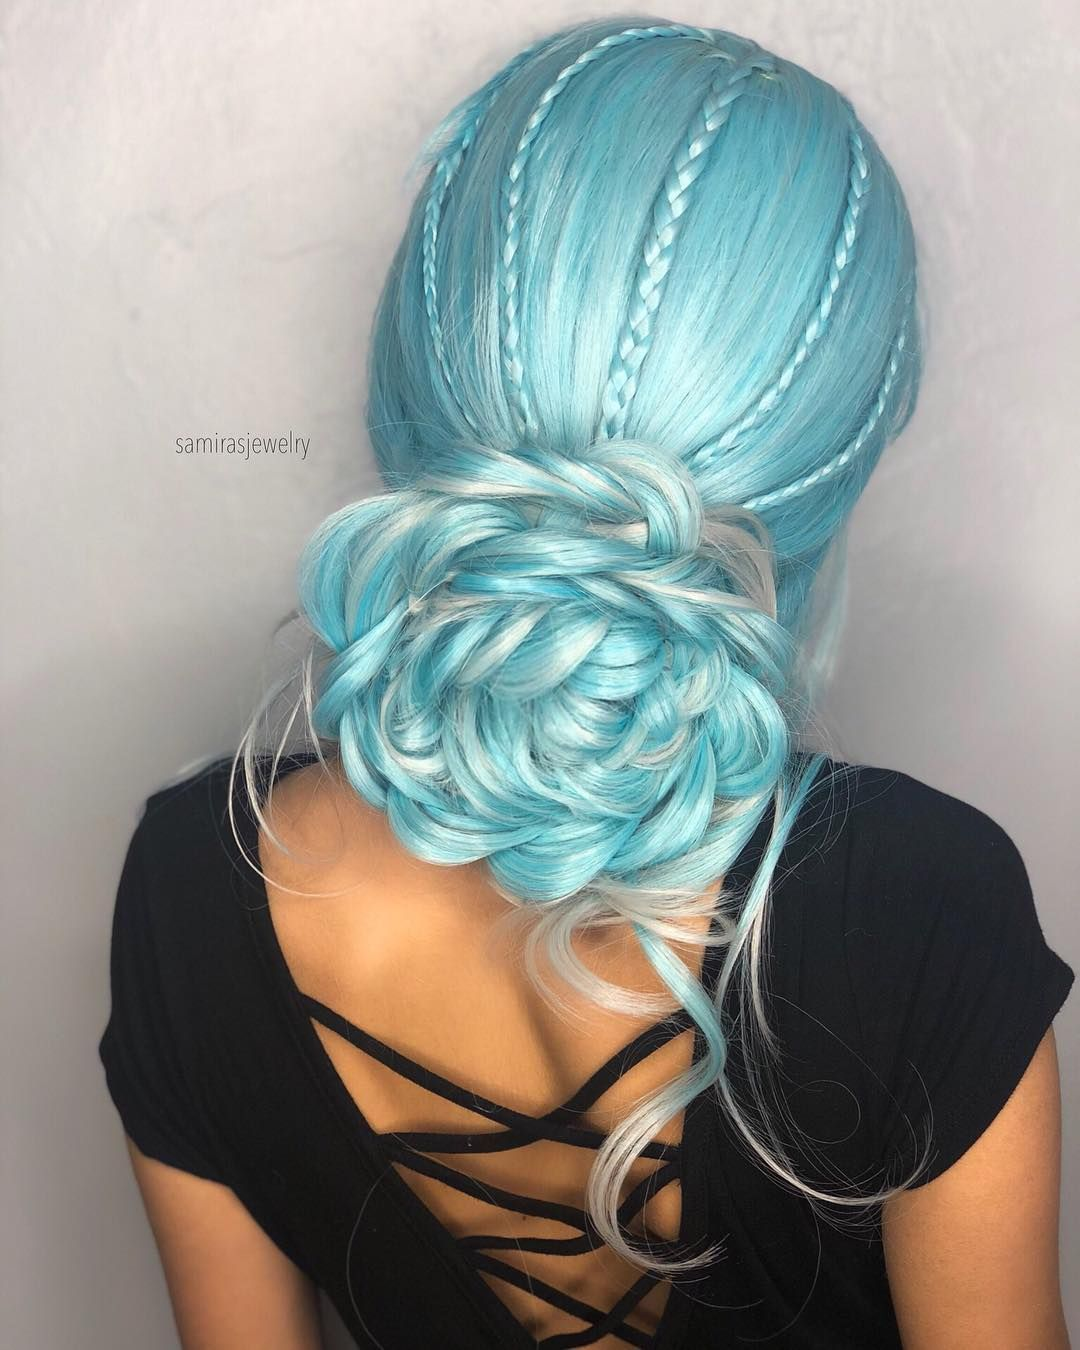 Fashion week Hair?hot Braided trend this summer pictures for girls